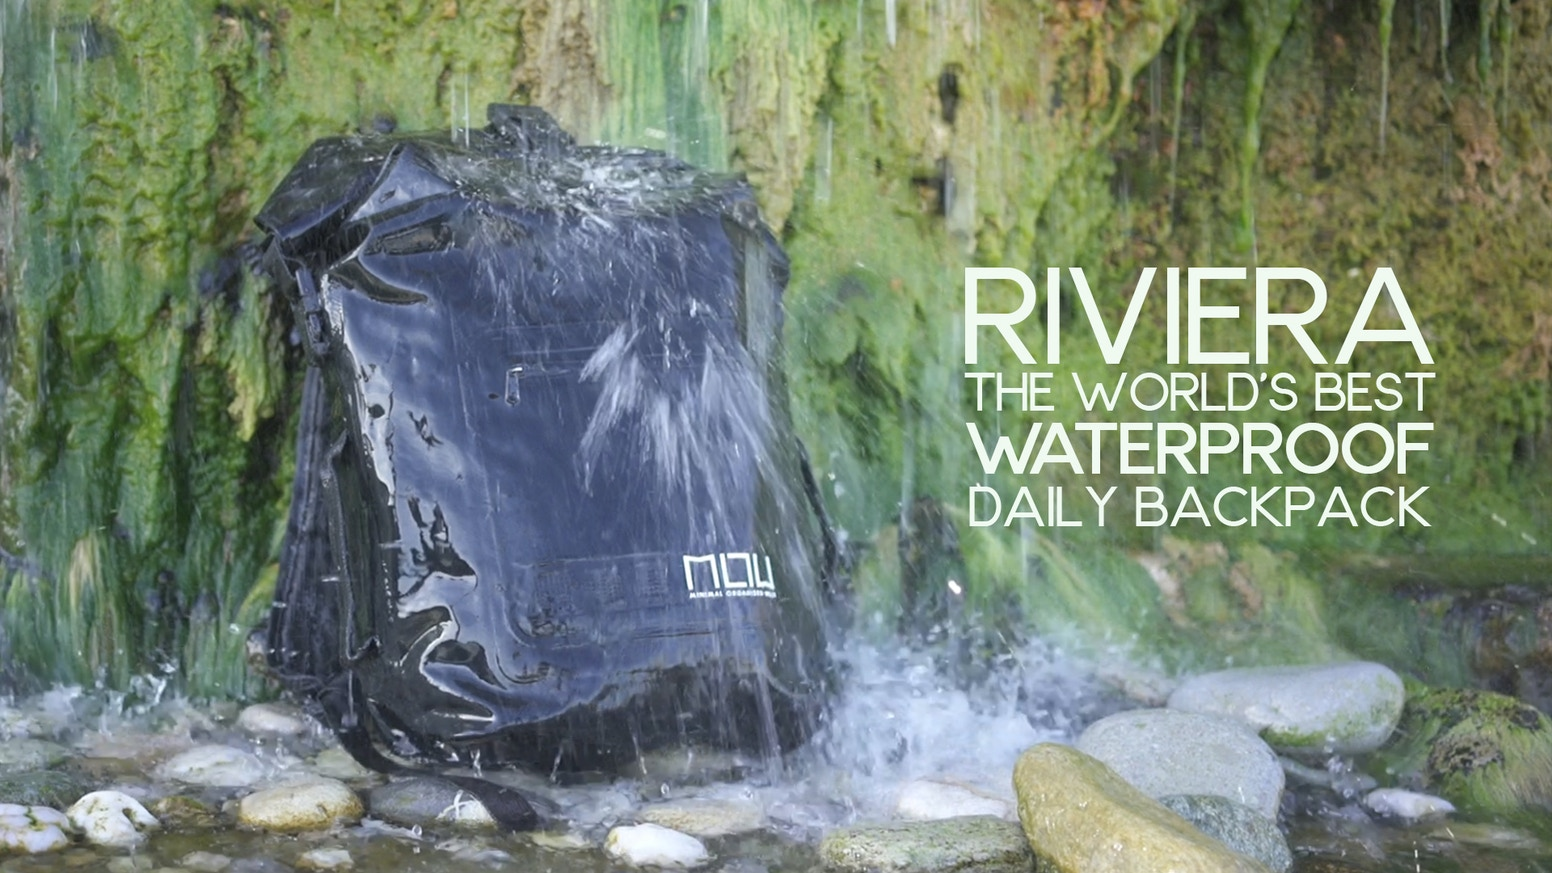 It's well-known that circuit boards and liquids don't mix. Riviera is the only backpack specifically designed to avoid that.